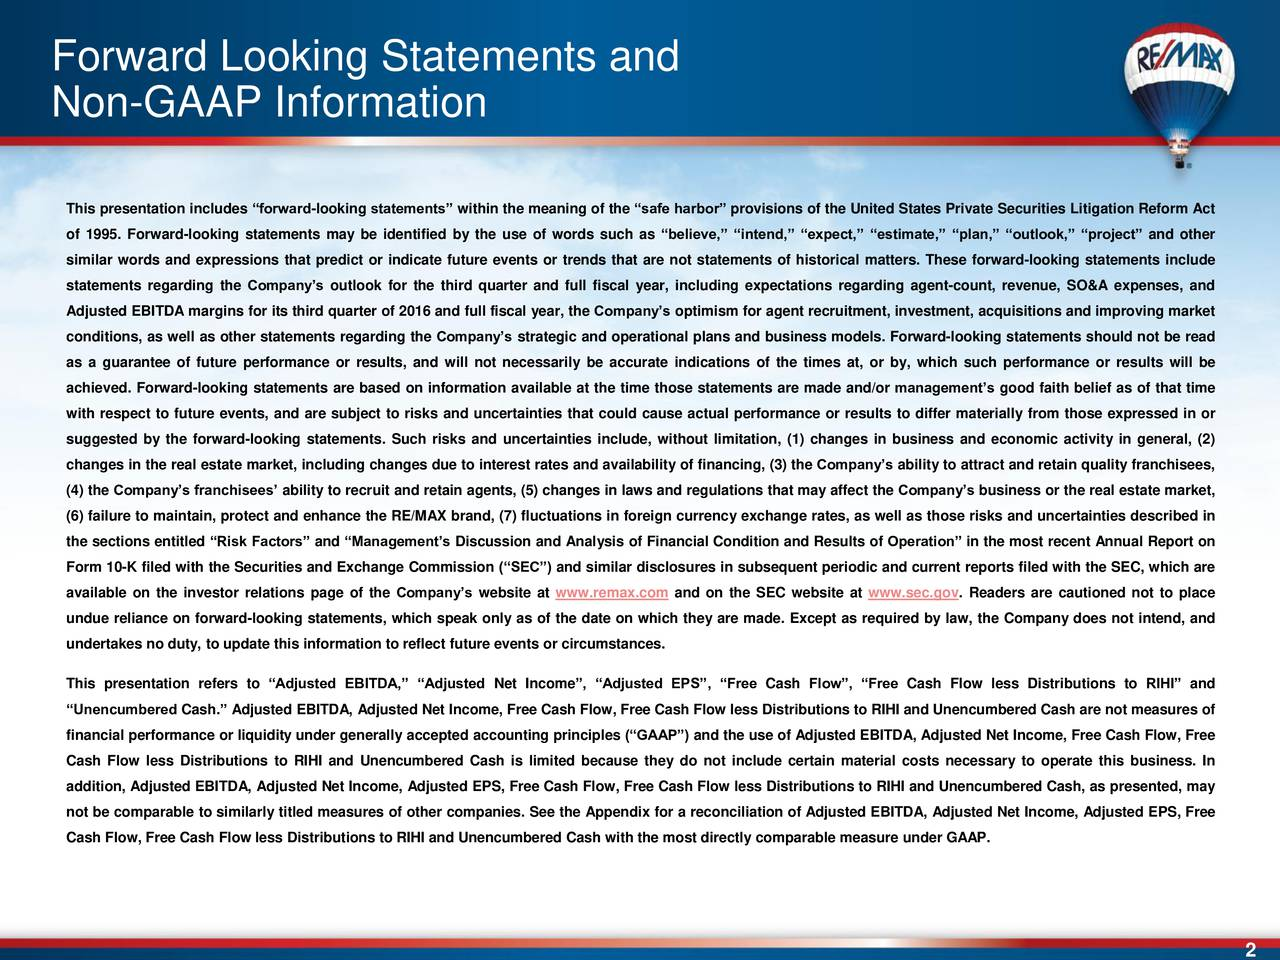 Non-GAAP Information This presentation includes forward-looking statements within the meaning of the safe harbor provisions of the United States Private Securities Litigation Reform Act of 1995. Forward-looking statements may be identified by the use of words such as believe, intend, expect, estimate, plan, outlook, project and other similar words and expressions that predict or indicate future events or trends that are not statements of historical matters. These forward-looking statements include statements regarding the Companys outlook for the third quarter and full fiscal year, including expectations regarding agent-count, revenue, SO&A expenses, and Adjusted EBITDA margins for its third quarter of 2016 and full fiscal year, the Companys optimism for agent recruitment, investment, acquisitions and improving market conditions, as well as other statements regarding the Companys strategic and operational plans and business models. Forward-looking statements should not be read as a guarantee of future performance or results, and will not necessarily be accurate indications of the times at, or by, which such performance or results will be achieved. Forward-looking statements are based on information available at the time those statements are made and/or managements good faith belief as of that time with respect to future events, and are subject to risks and uncertainties that could cause actual performance or results to differ materially from those expressed in or suggested by the forward-looking statements. Such risks and uncertainties include, without limitation, (1) changes in business and economic activity in general, (2) changes in the real estate market, including changes due to interest rates and availability of financing, (3) the Companys ability to attract and retain quality franchisees, (4) the Companys franchisees ability to recruit and retain agents, (5) changes in laws and regulations that may affect the Companys business or the real estate market, (6) f